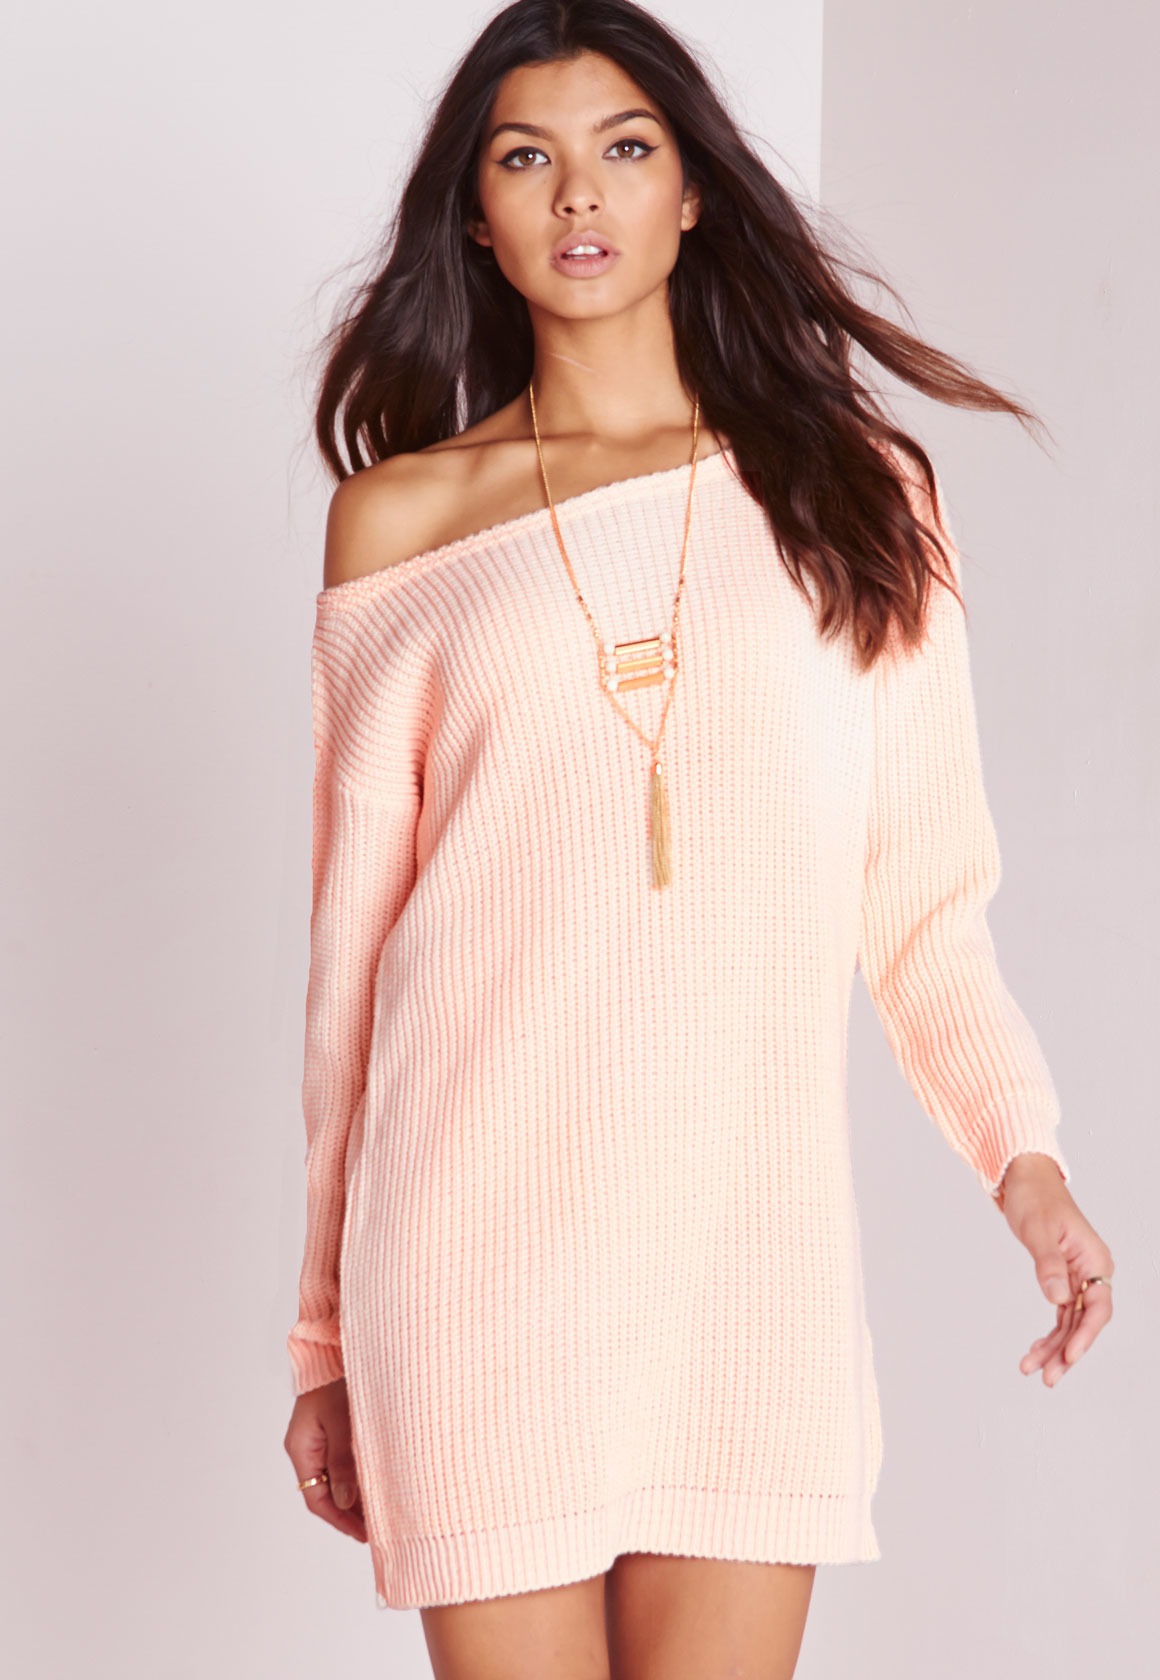 off the shoulder dresses brings you the best selection of sweaters. If you like sweaters, check out cardigans, pullovers, and sweater vests. Off the Shoulder Dresses.